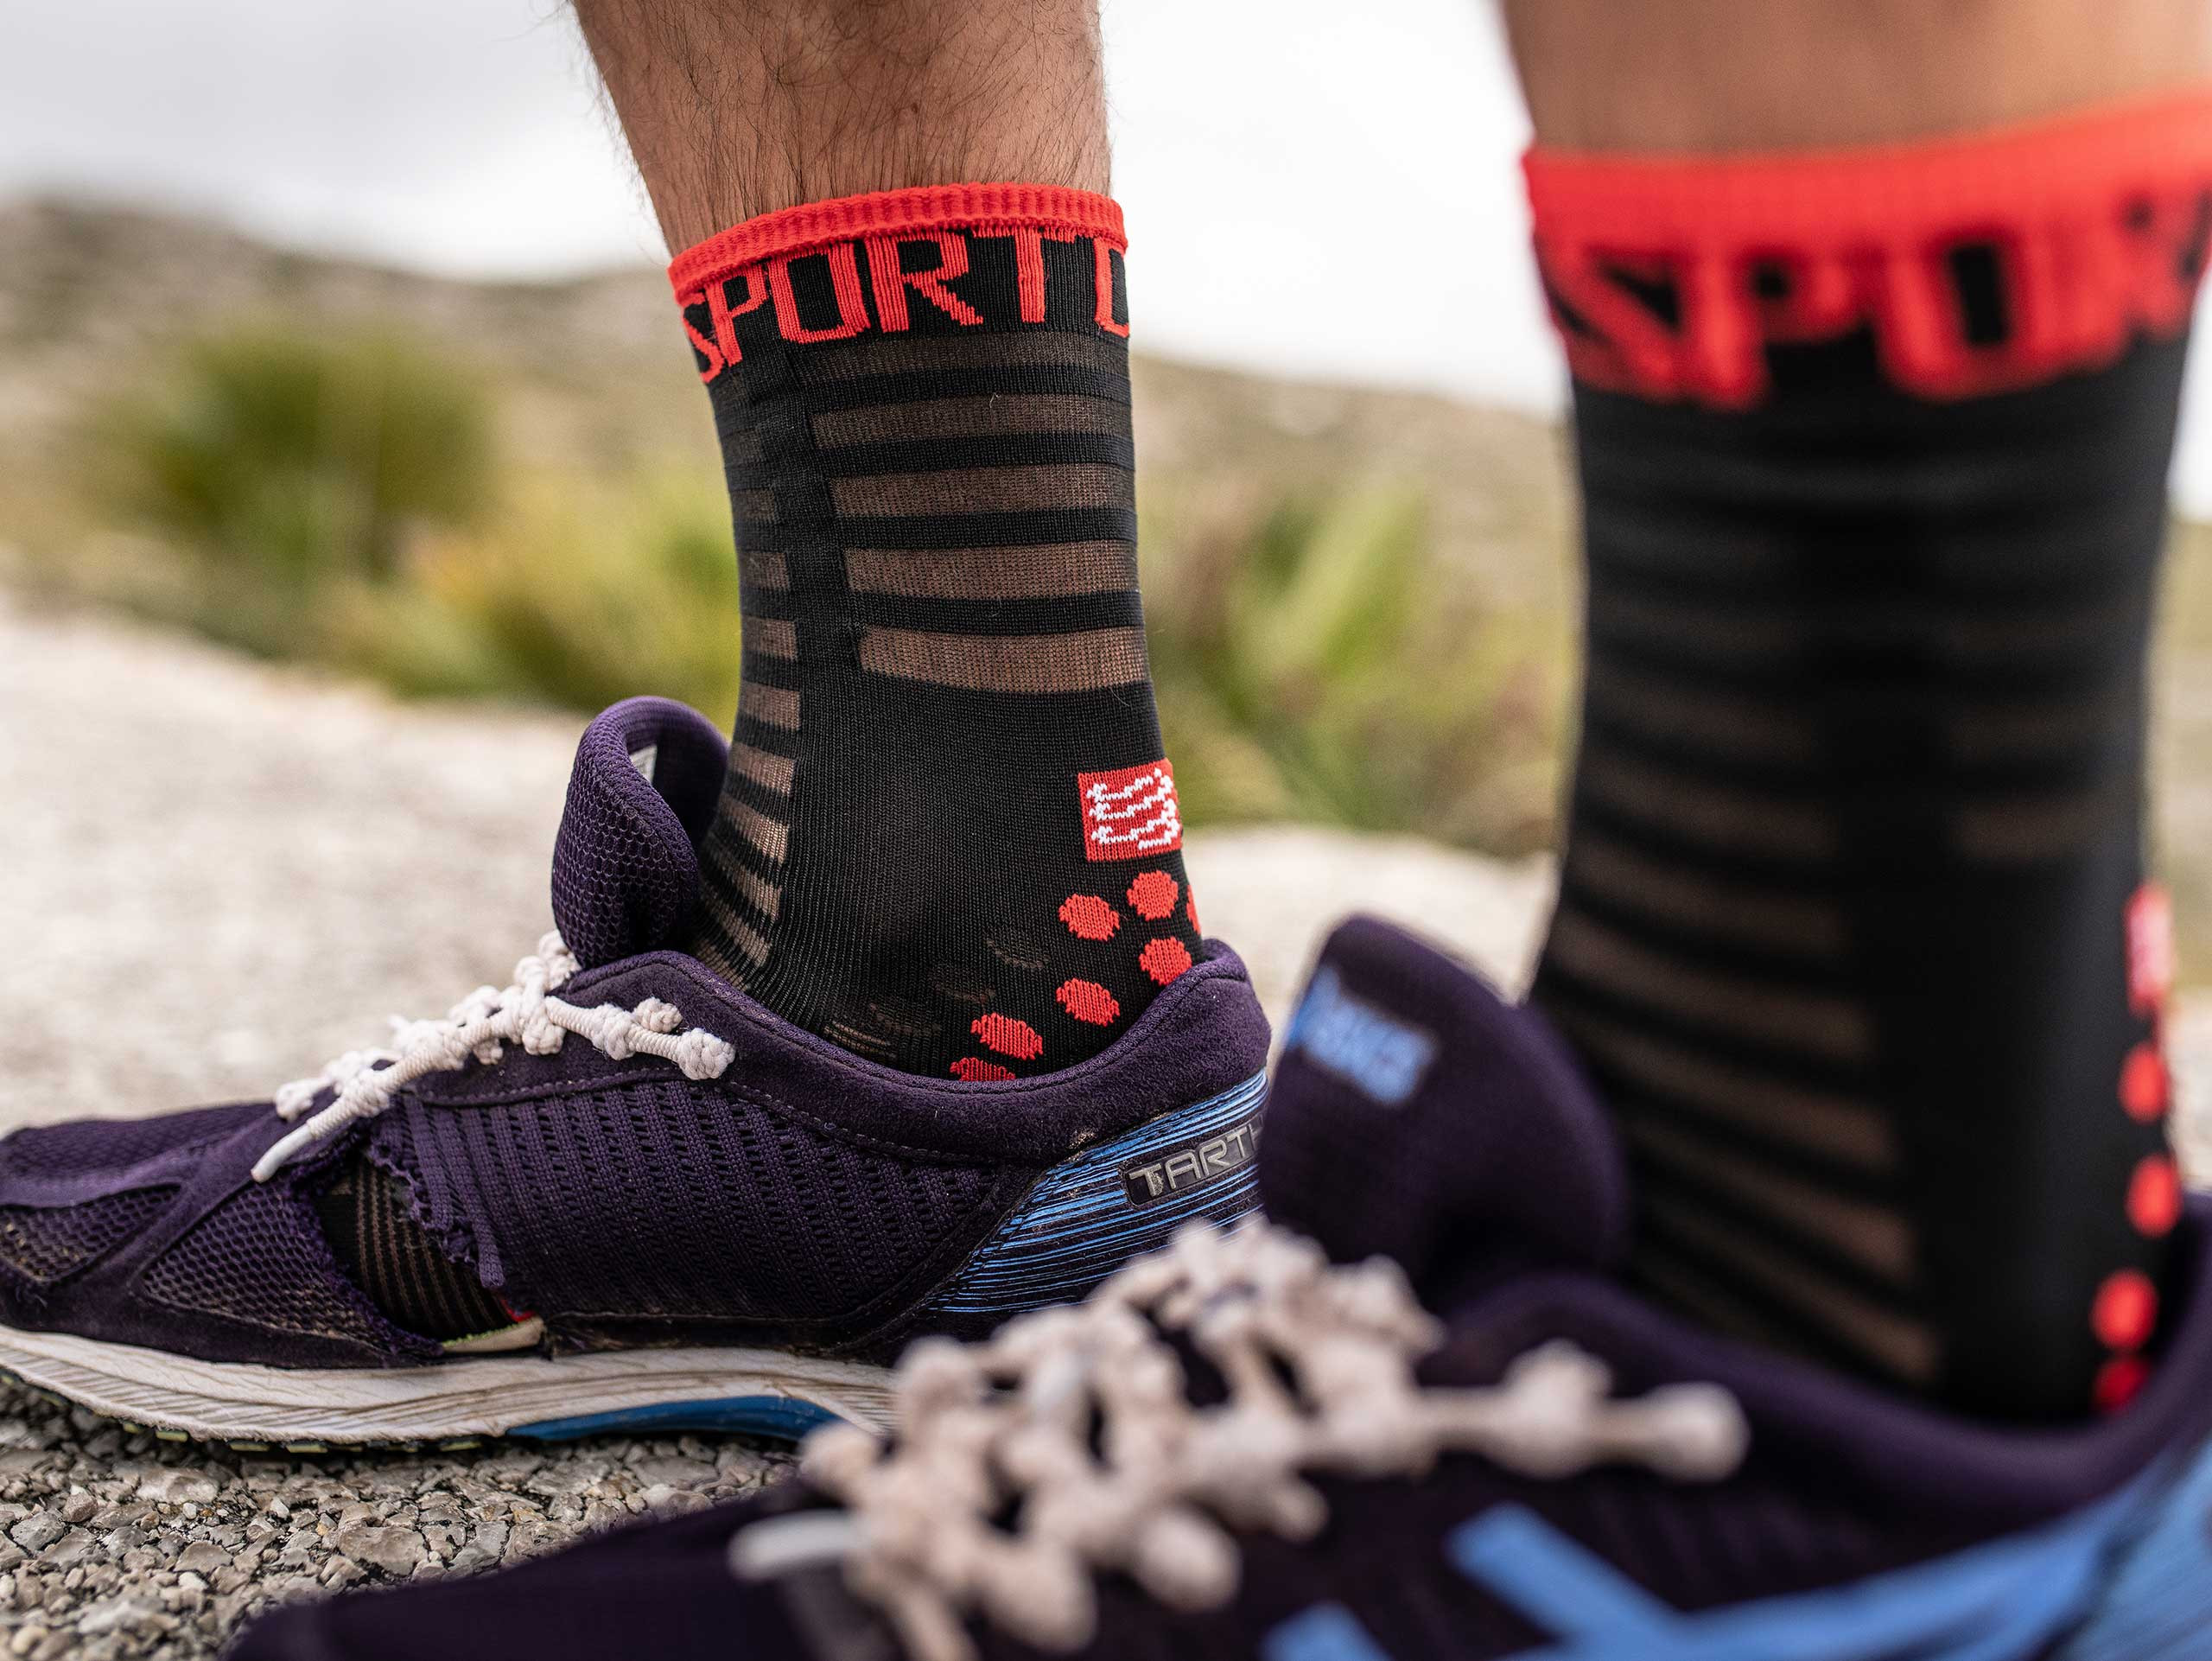 Pro Racing Socks v3.0 Ultralight Run High black/red